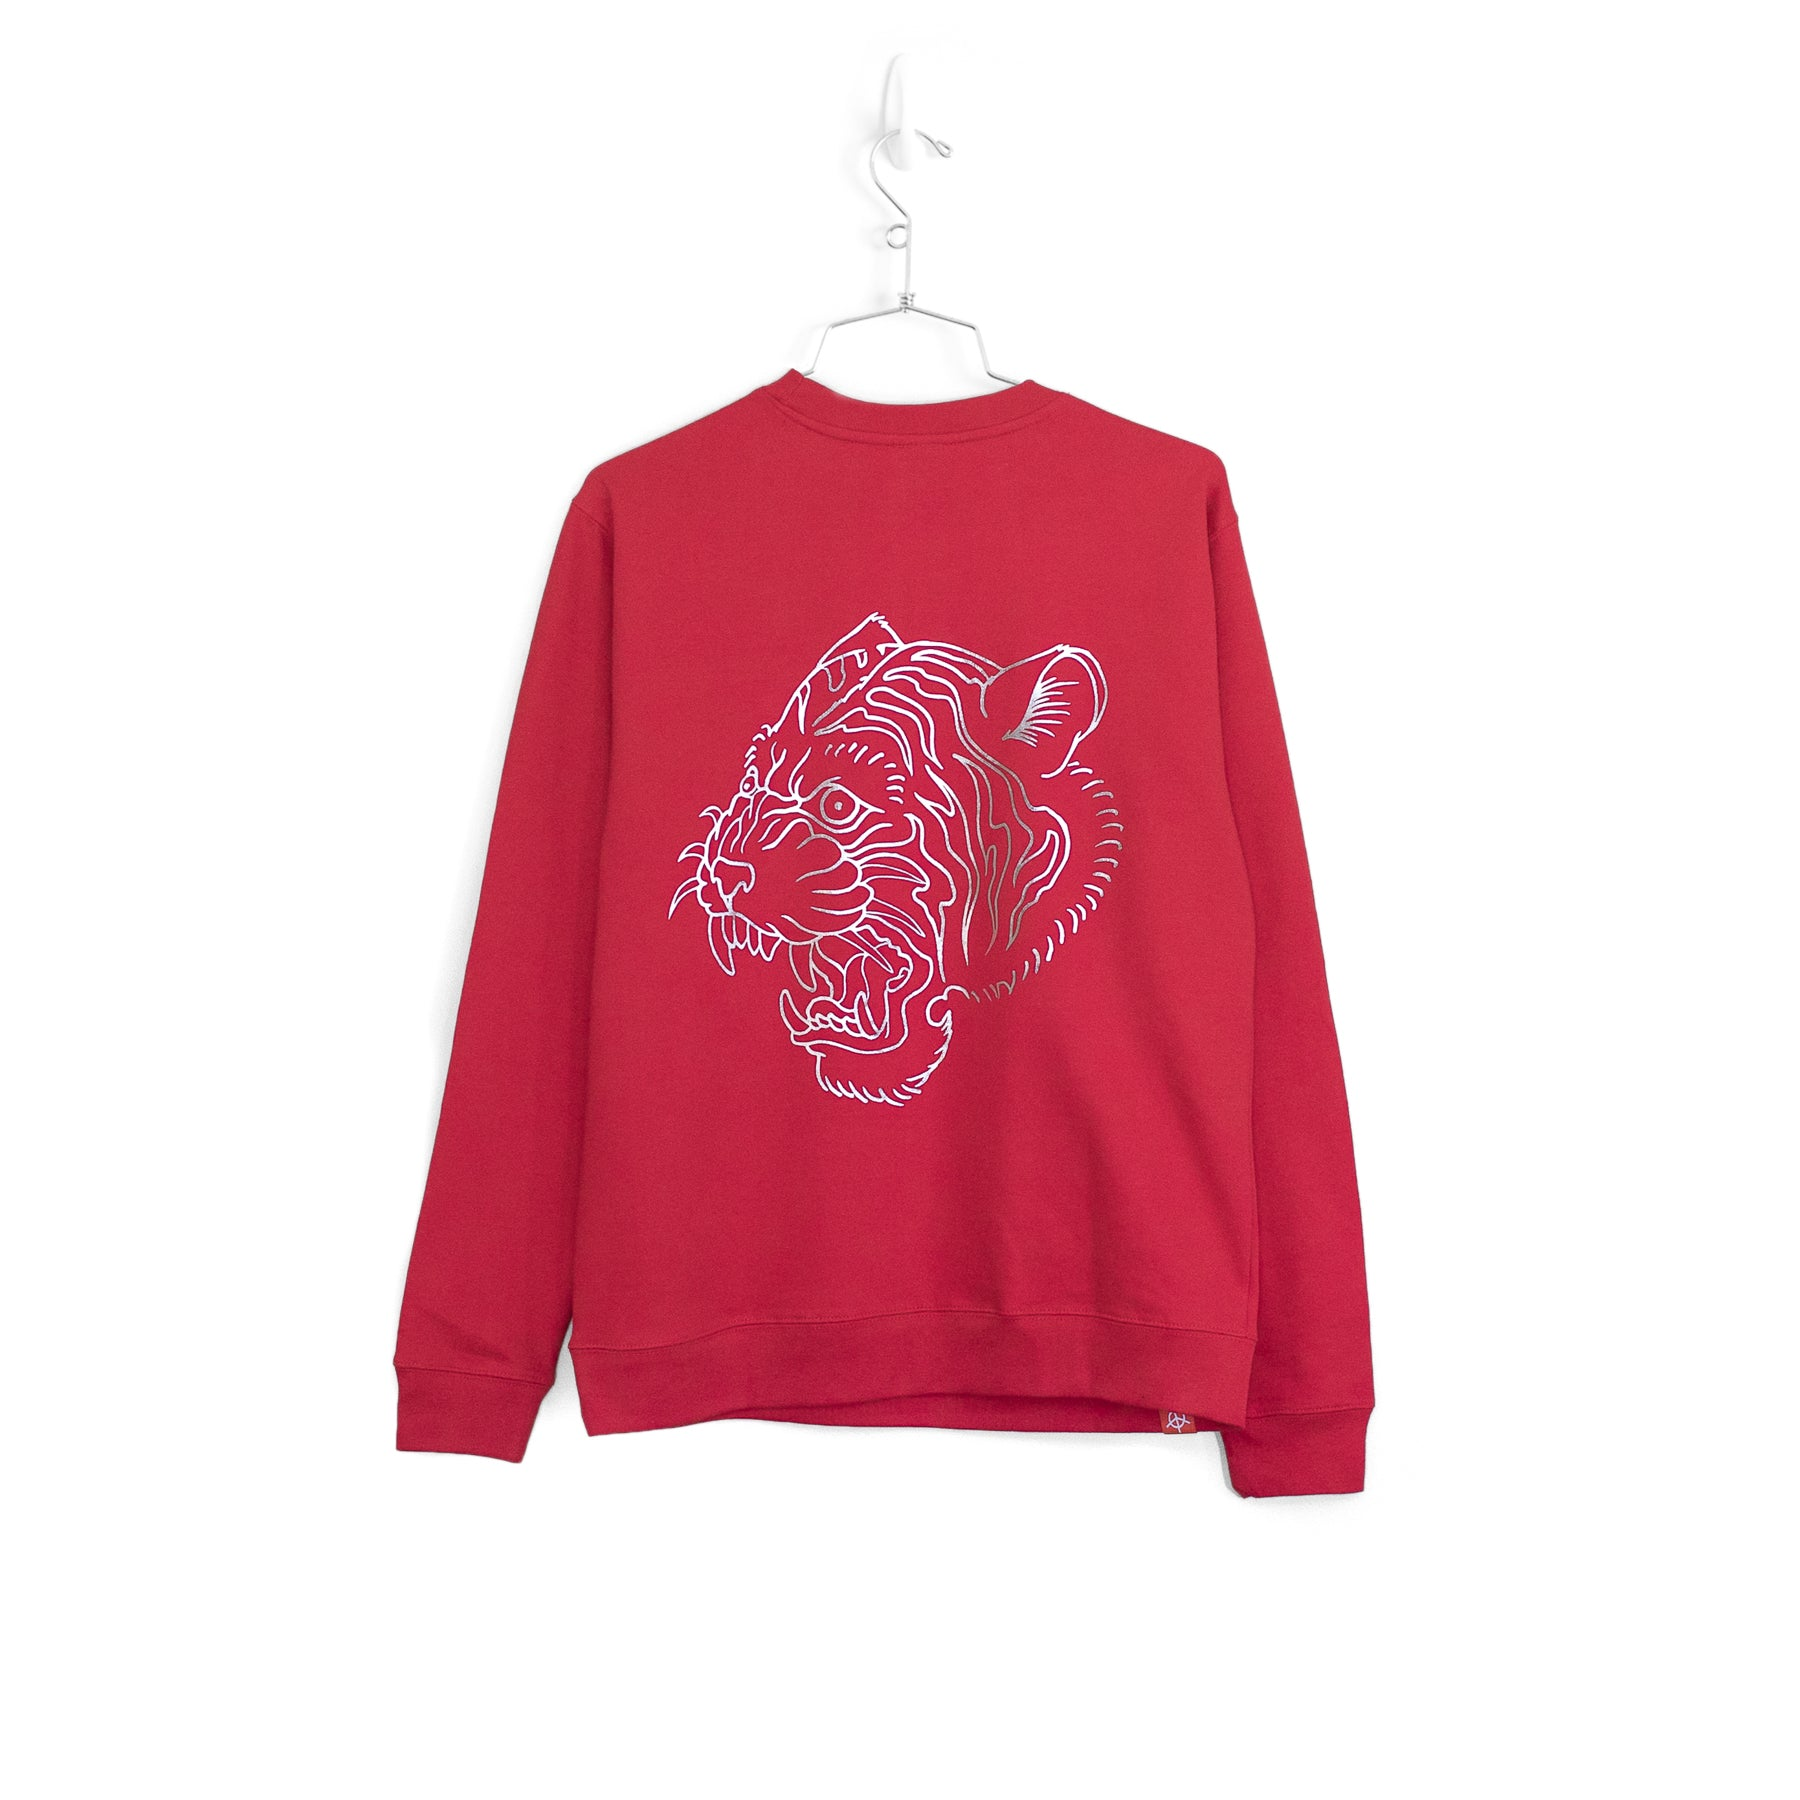 EYE OF THE TIGER BLAST SWEATER - RED (SILVER EMBROIDERY)